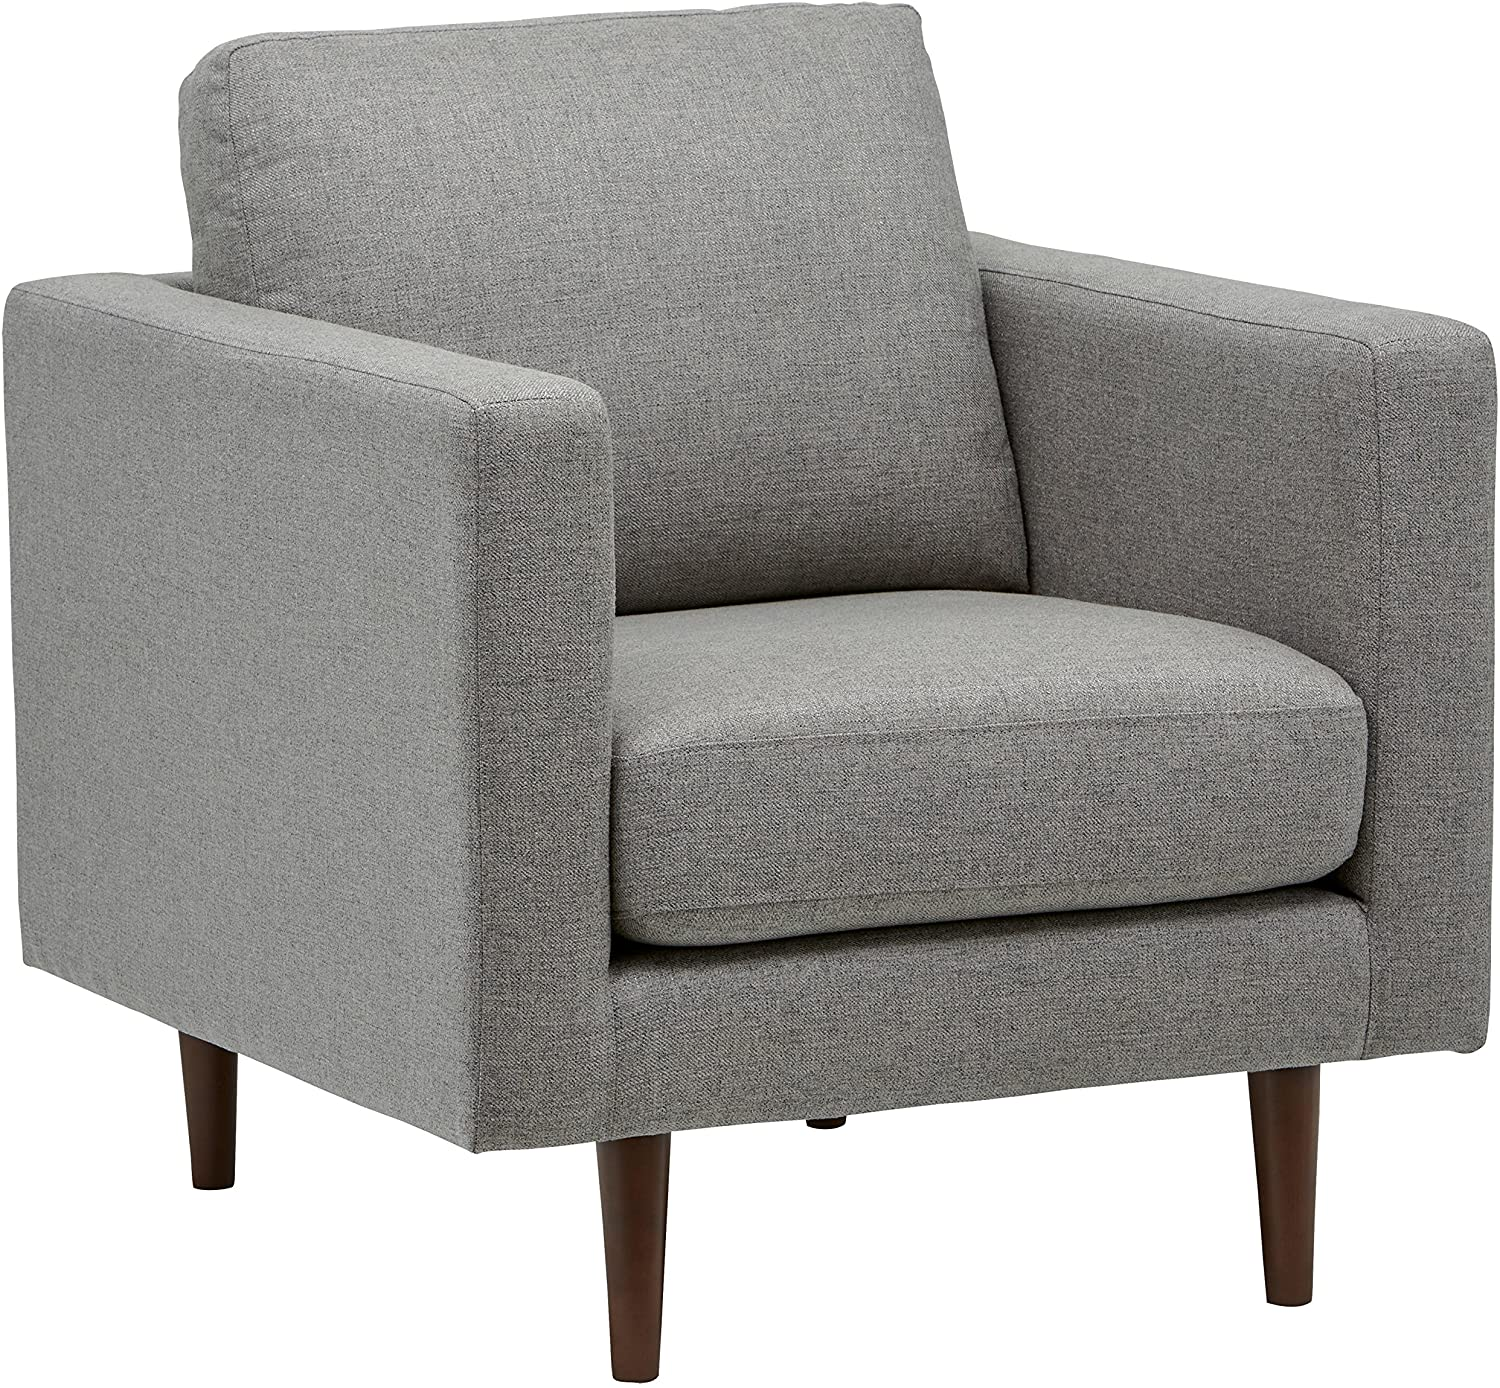 "Rivet Revolve Modern Upholstered Armchair with Tapered Legs, 32.7""W, Grey Weave"